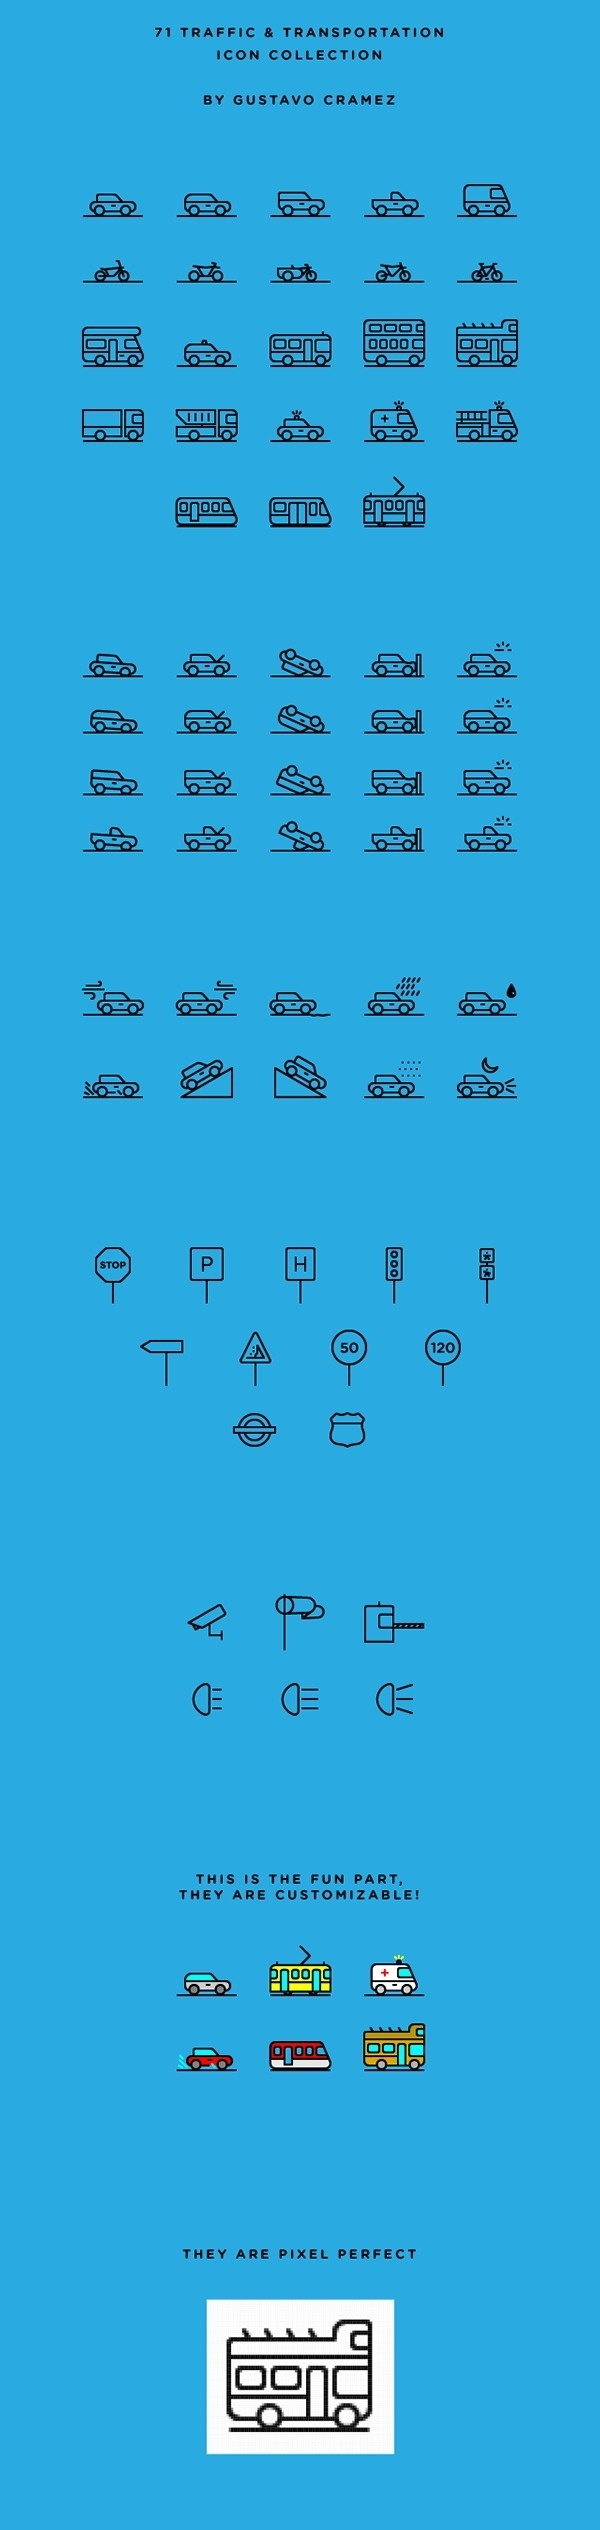 71 Traffic & Transportation Icon Collection | Free on Behance #pictogram #icon #sign #picto #symbol